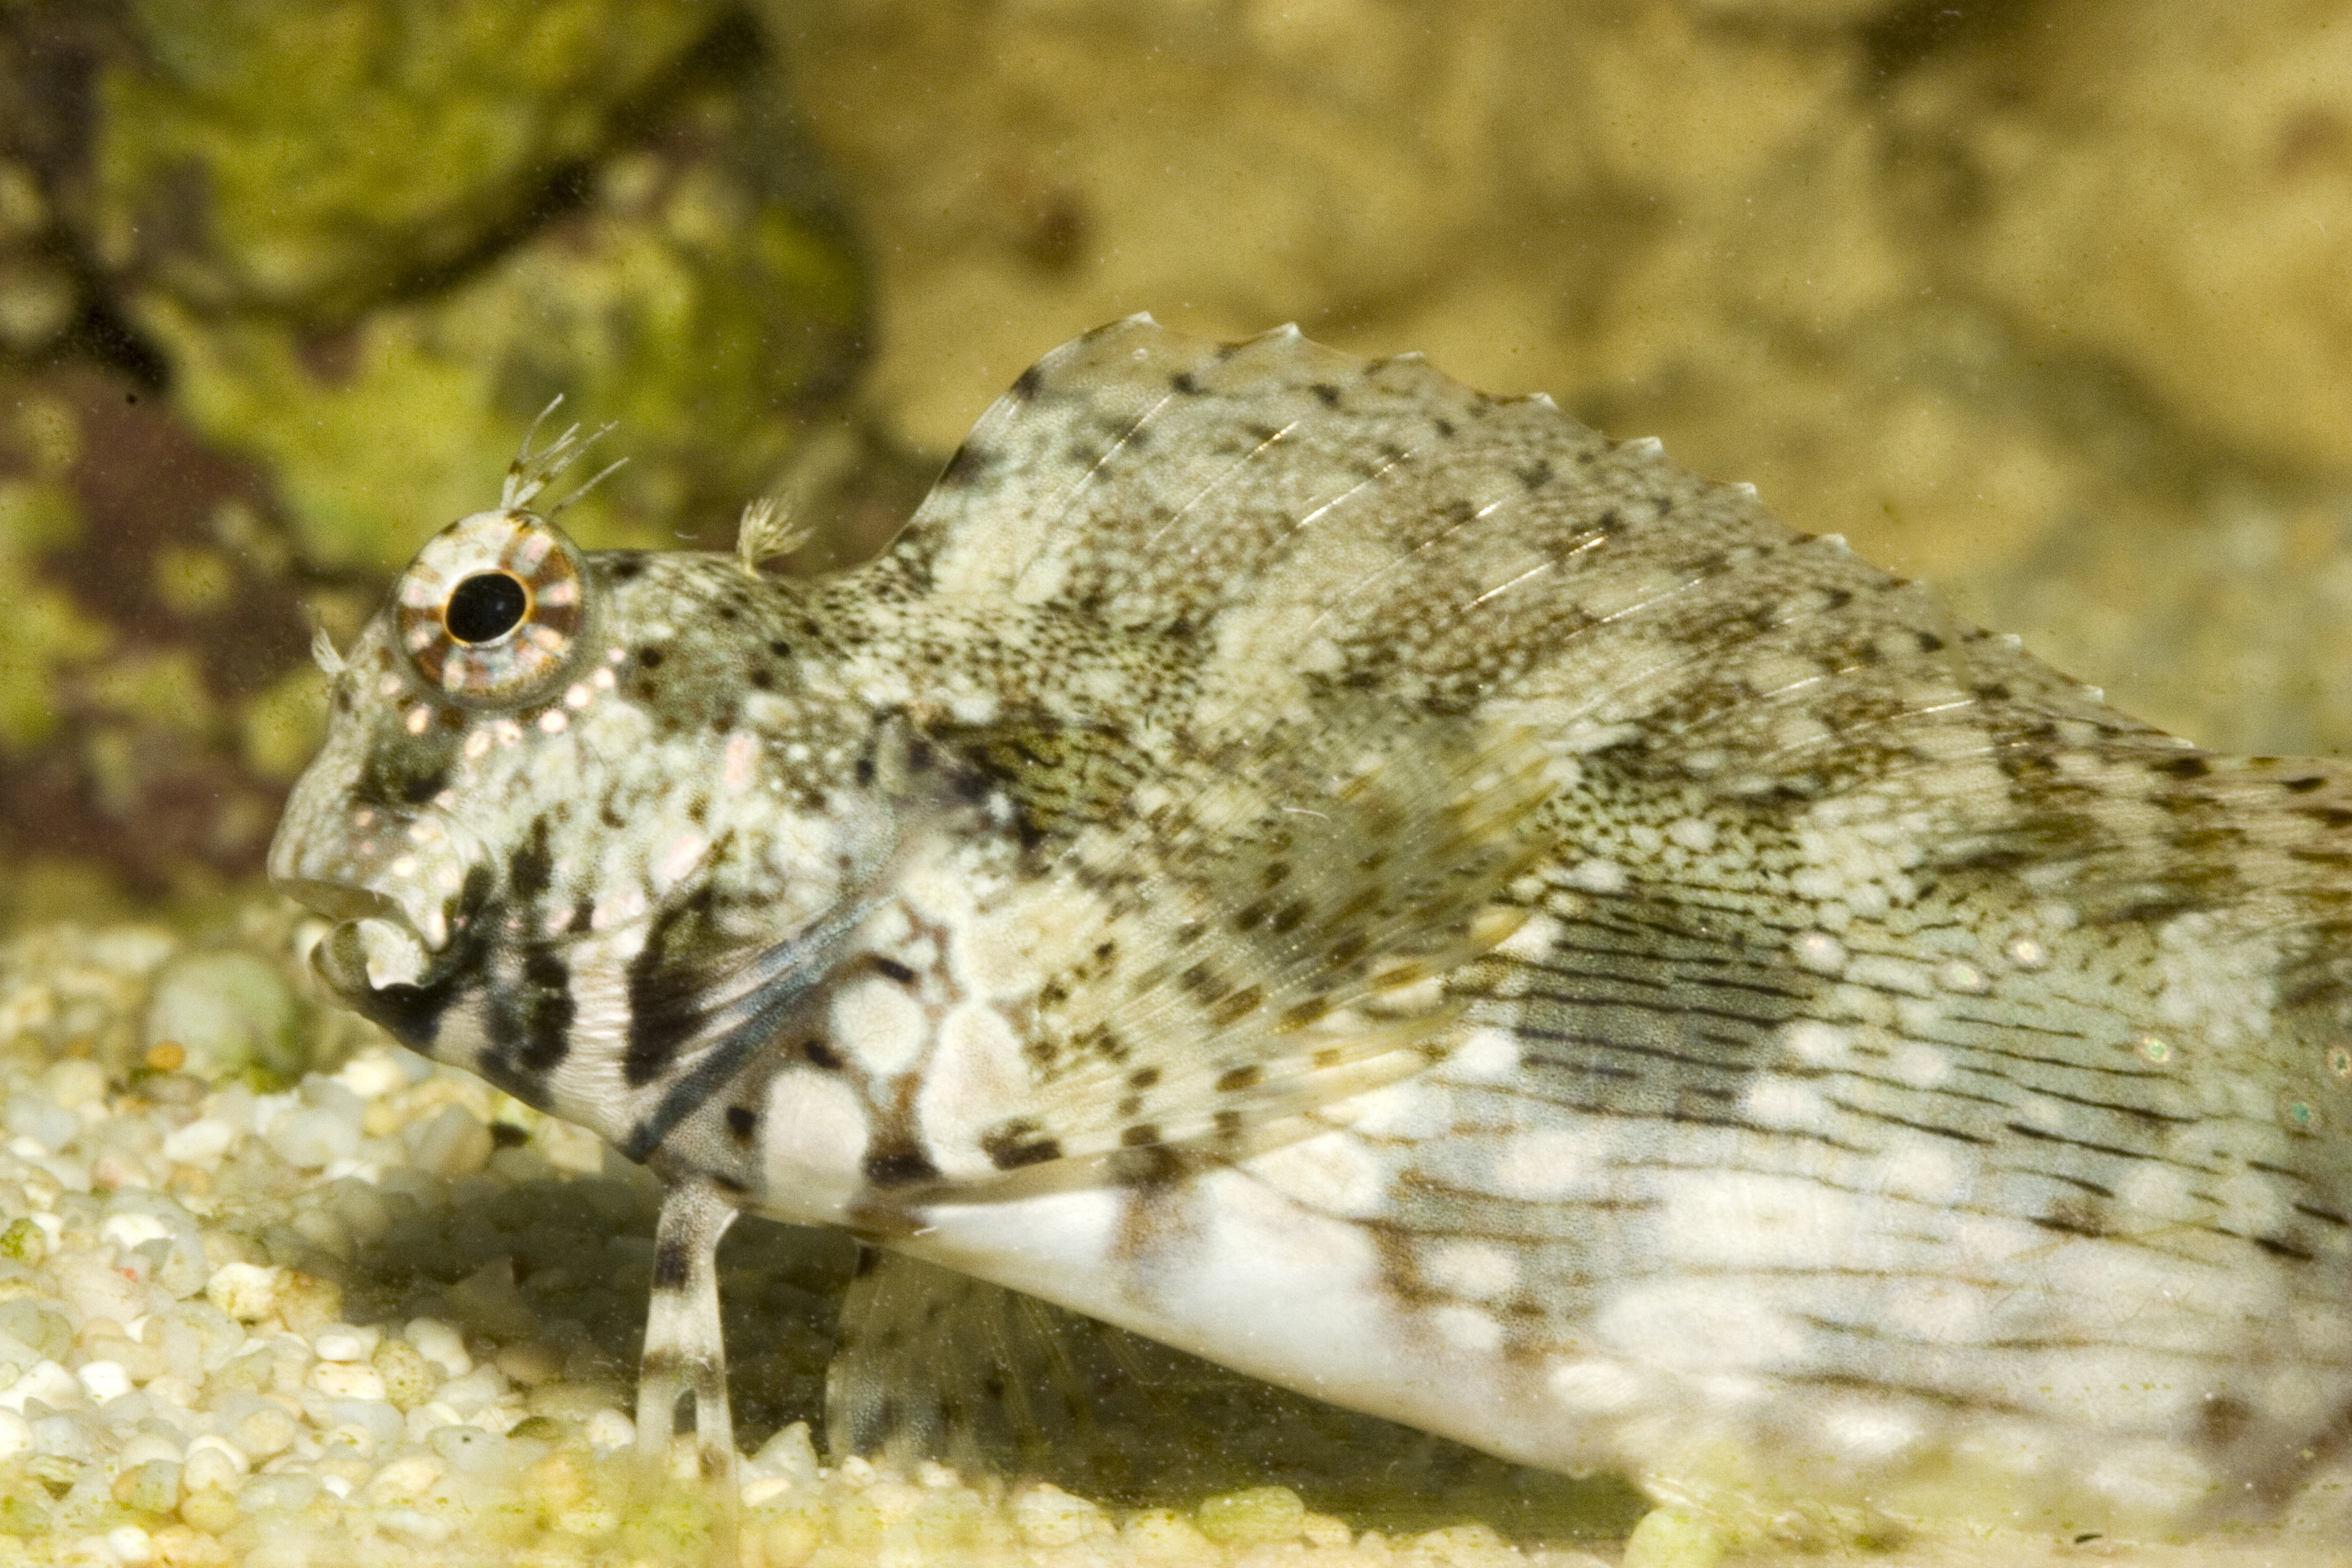 Istogobius decoratus (decorated goby), Aquarium.jpg - Istogobius decoratus (decorated goby)